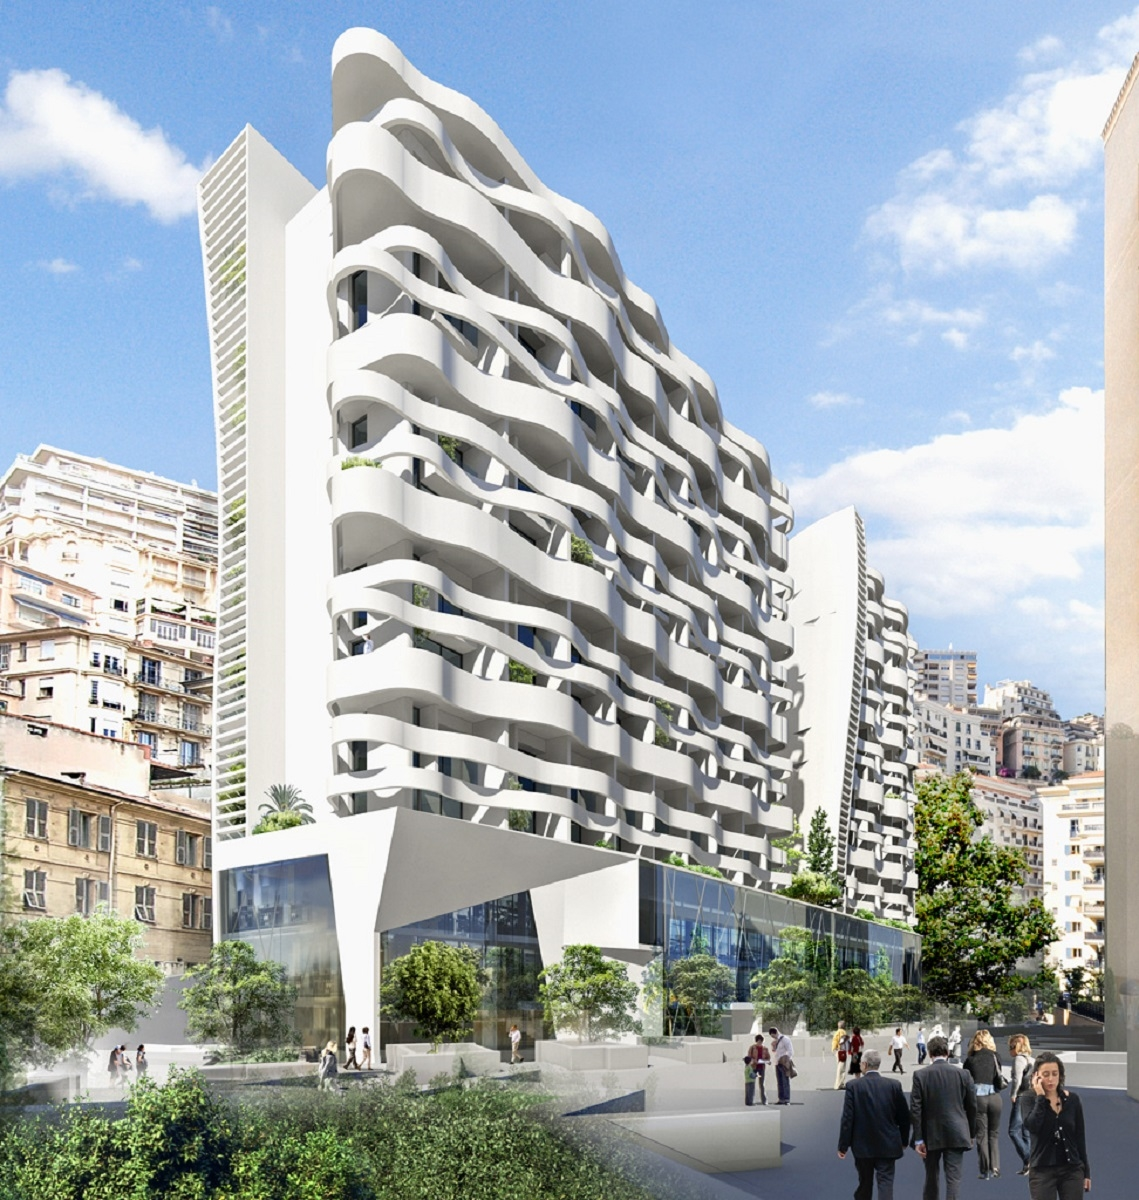 MONACO CONDAMINE STELLA 2 ROOMS DUPLEX MIXED CELLAR PARKING - Offices for sale in Monaco